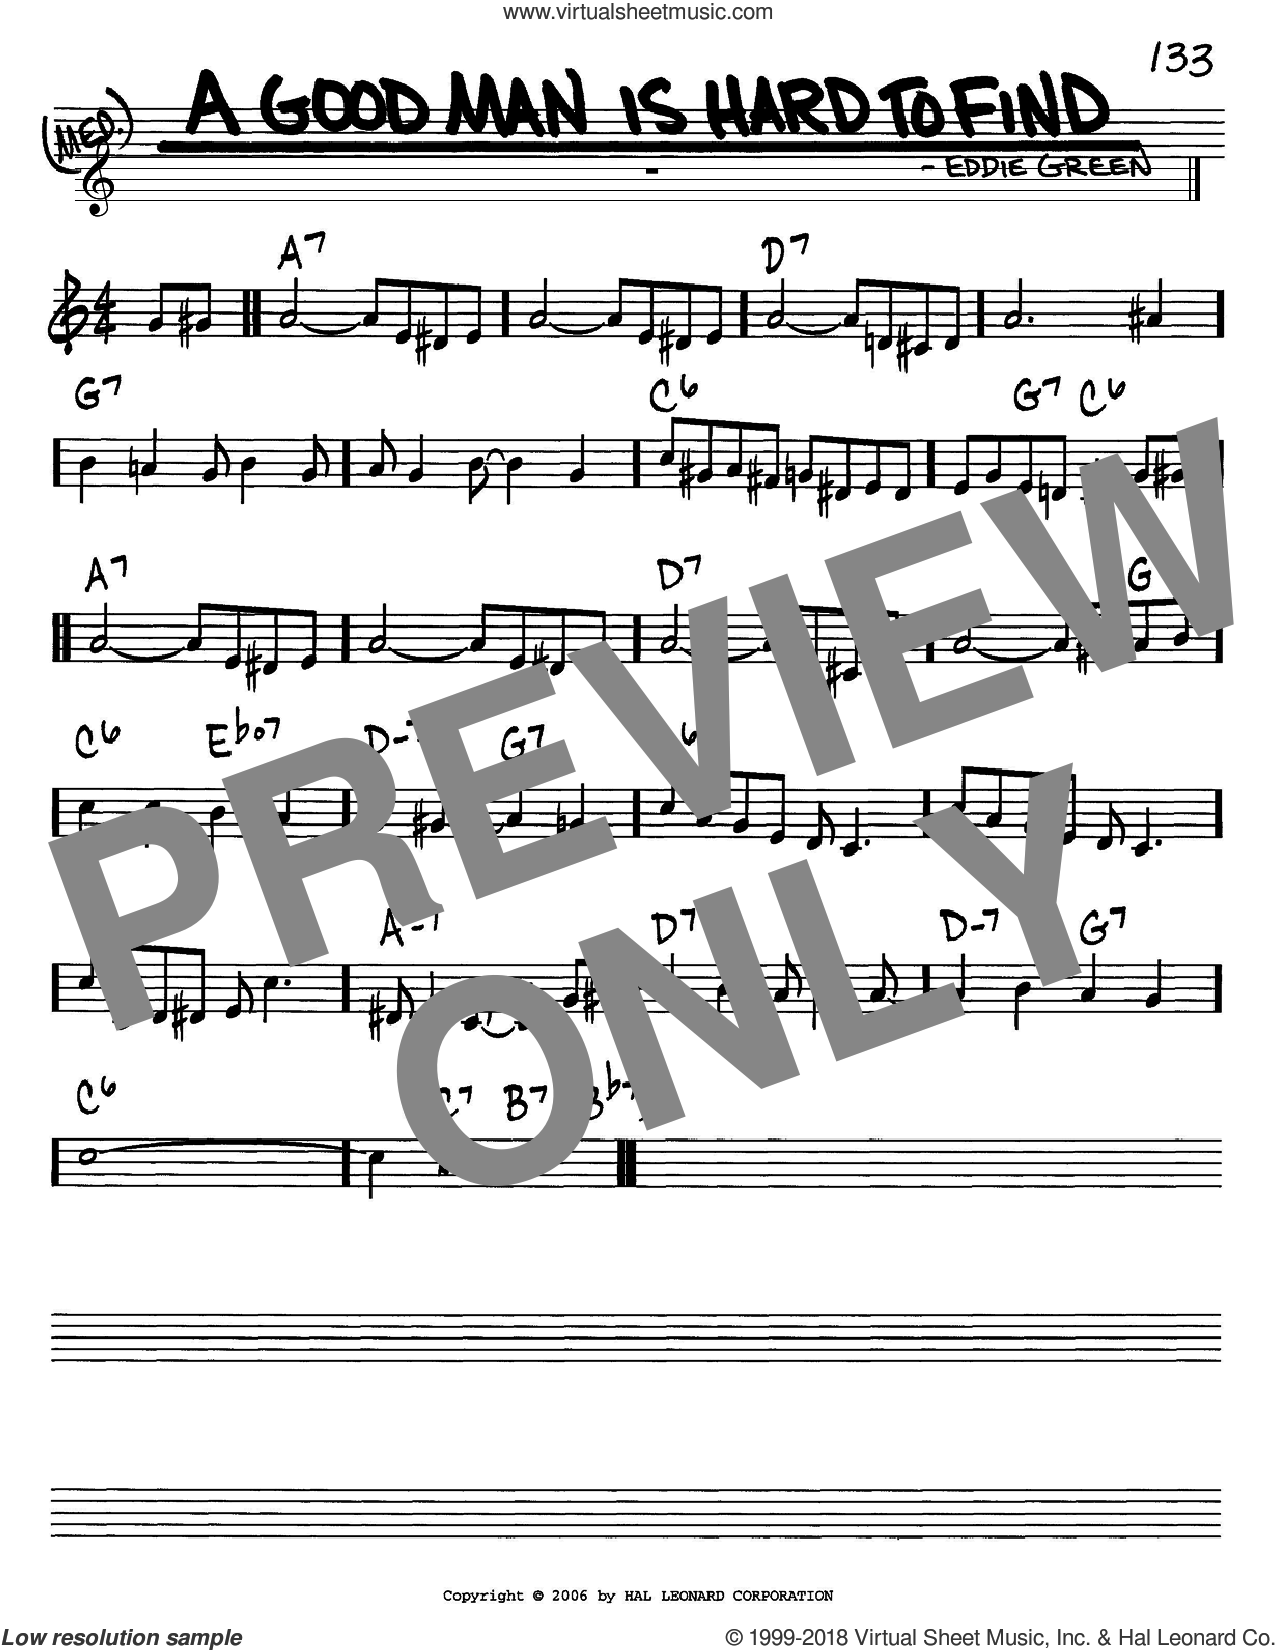 A Good Man Is Hard To Find sheet music for voice and other instruments (C) by Eddie Green. Score Image Preview.